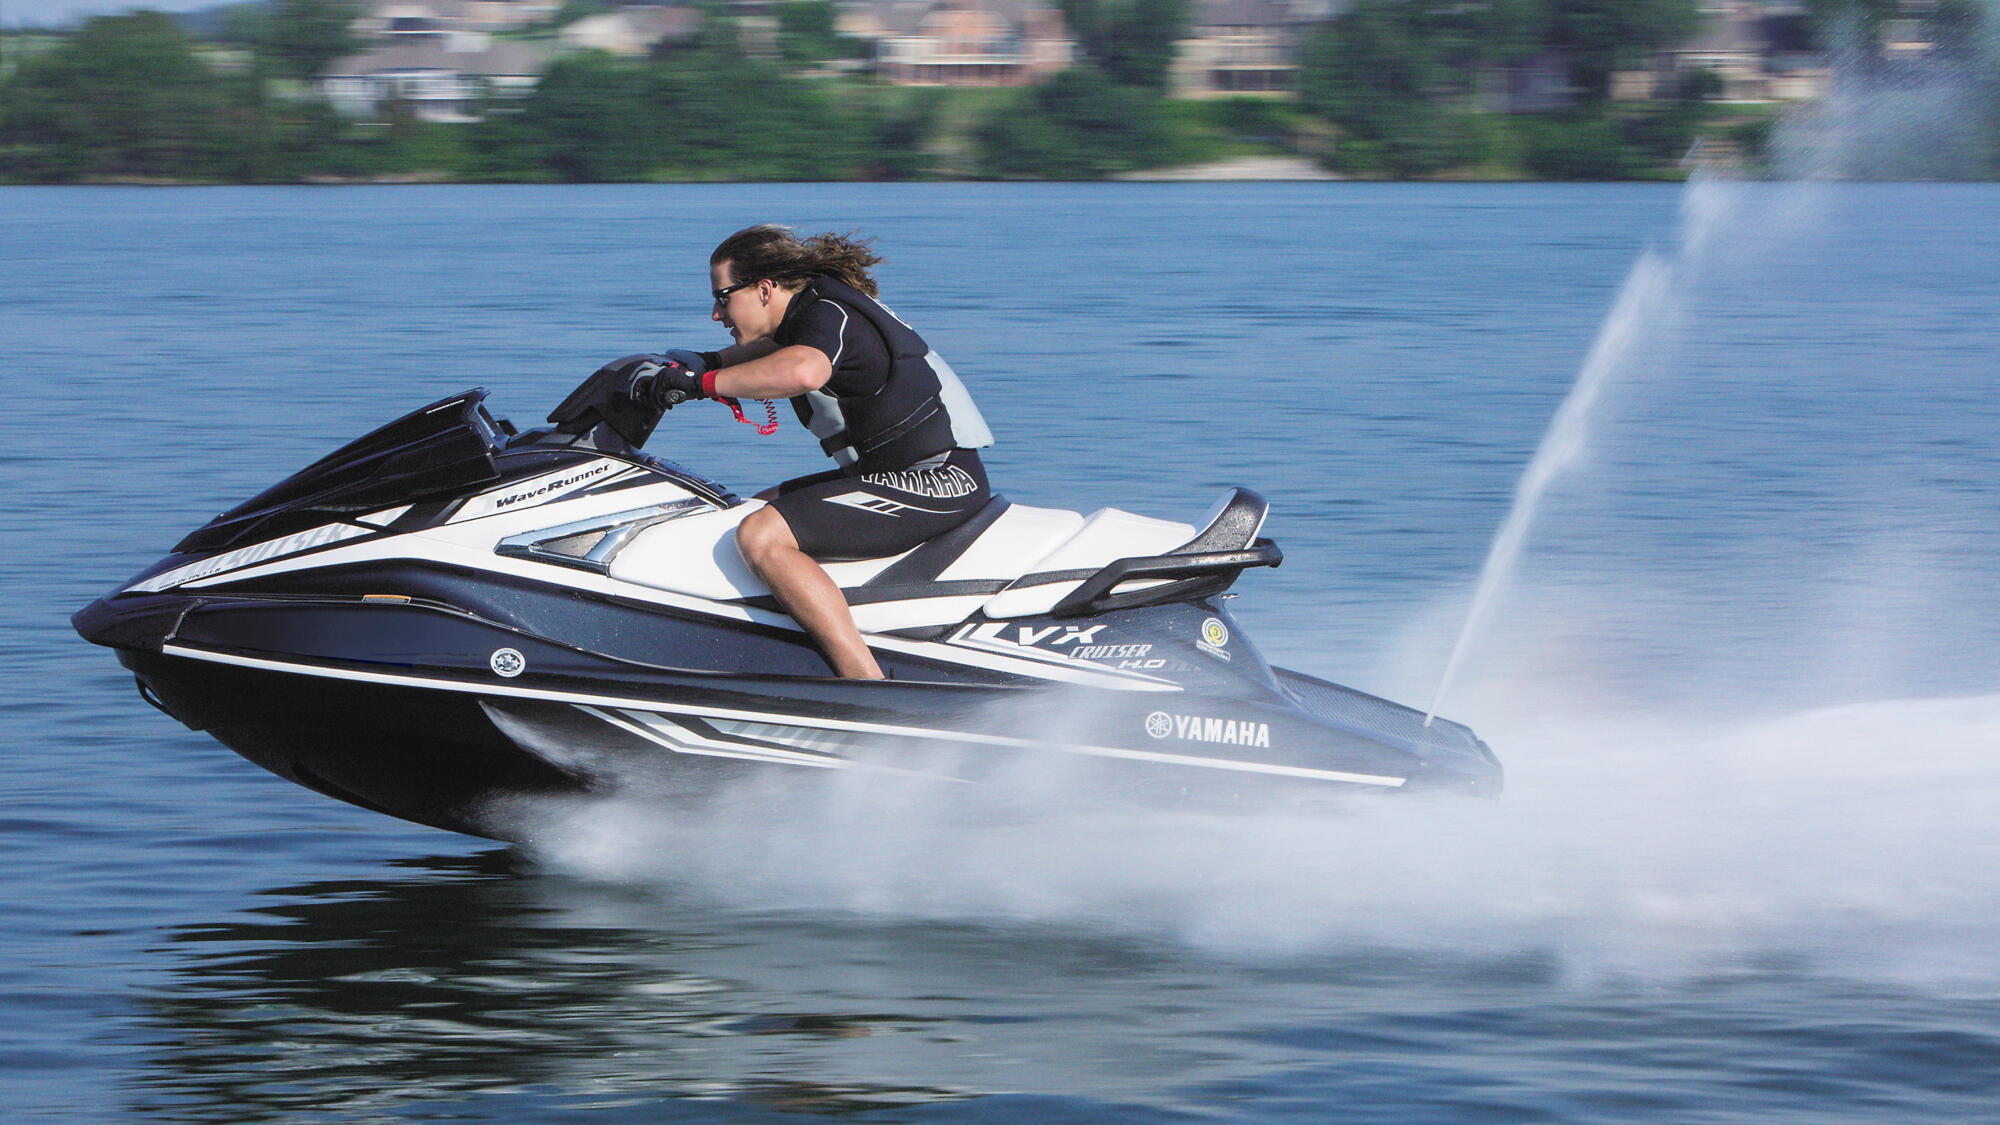 Meet The Ho Our Latest Vx Cruiser A Ger More Ful Engine Plus Its Revolutionary Ride Control System And Host Of Other Advantages Have Created